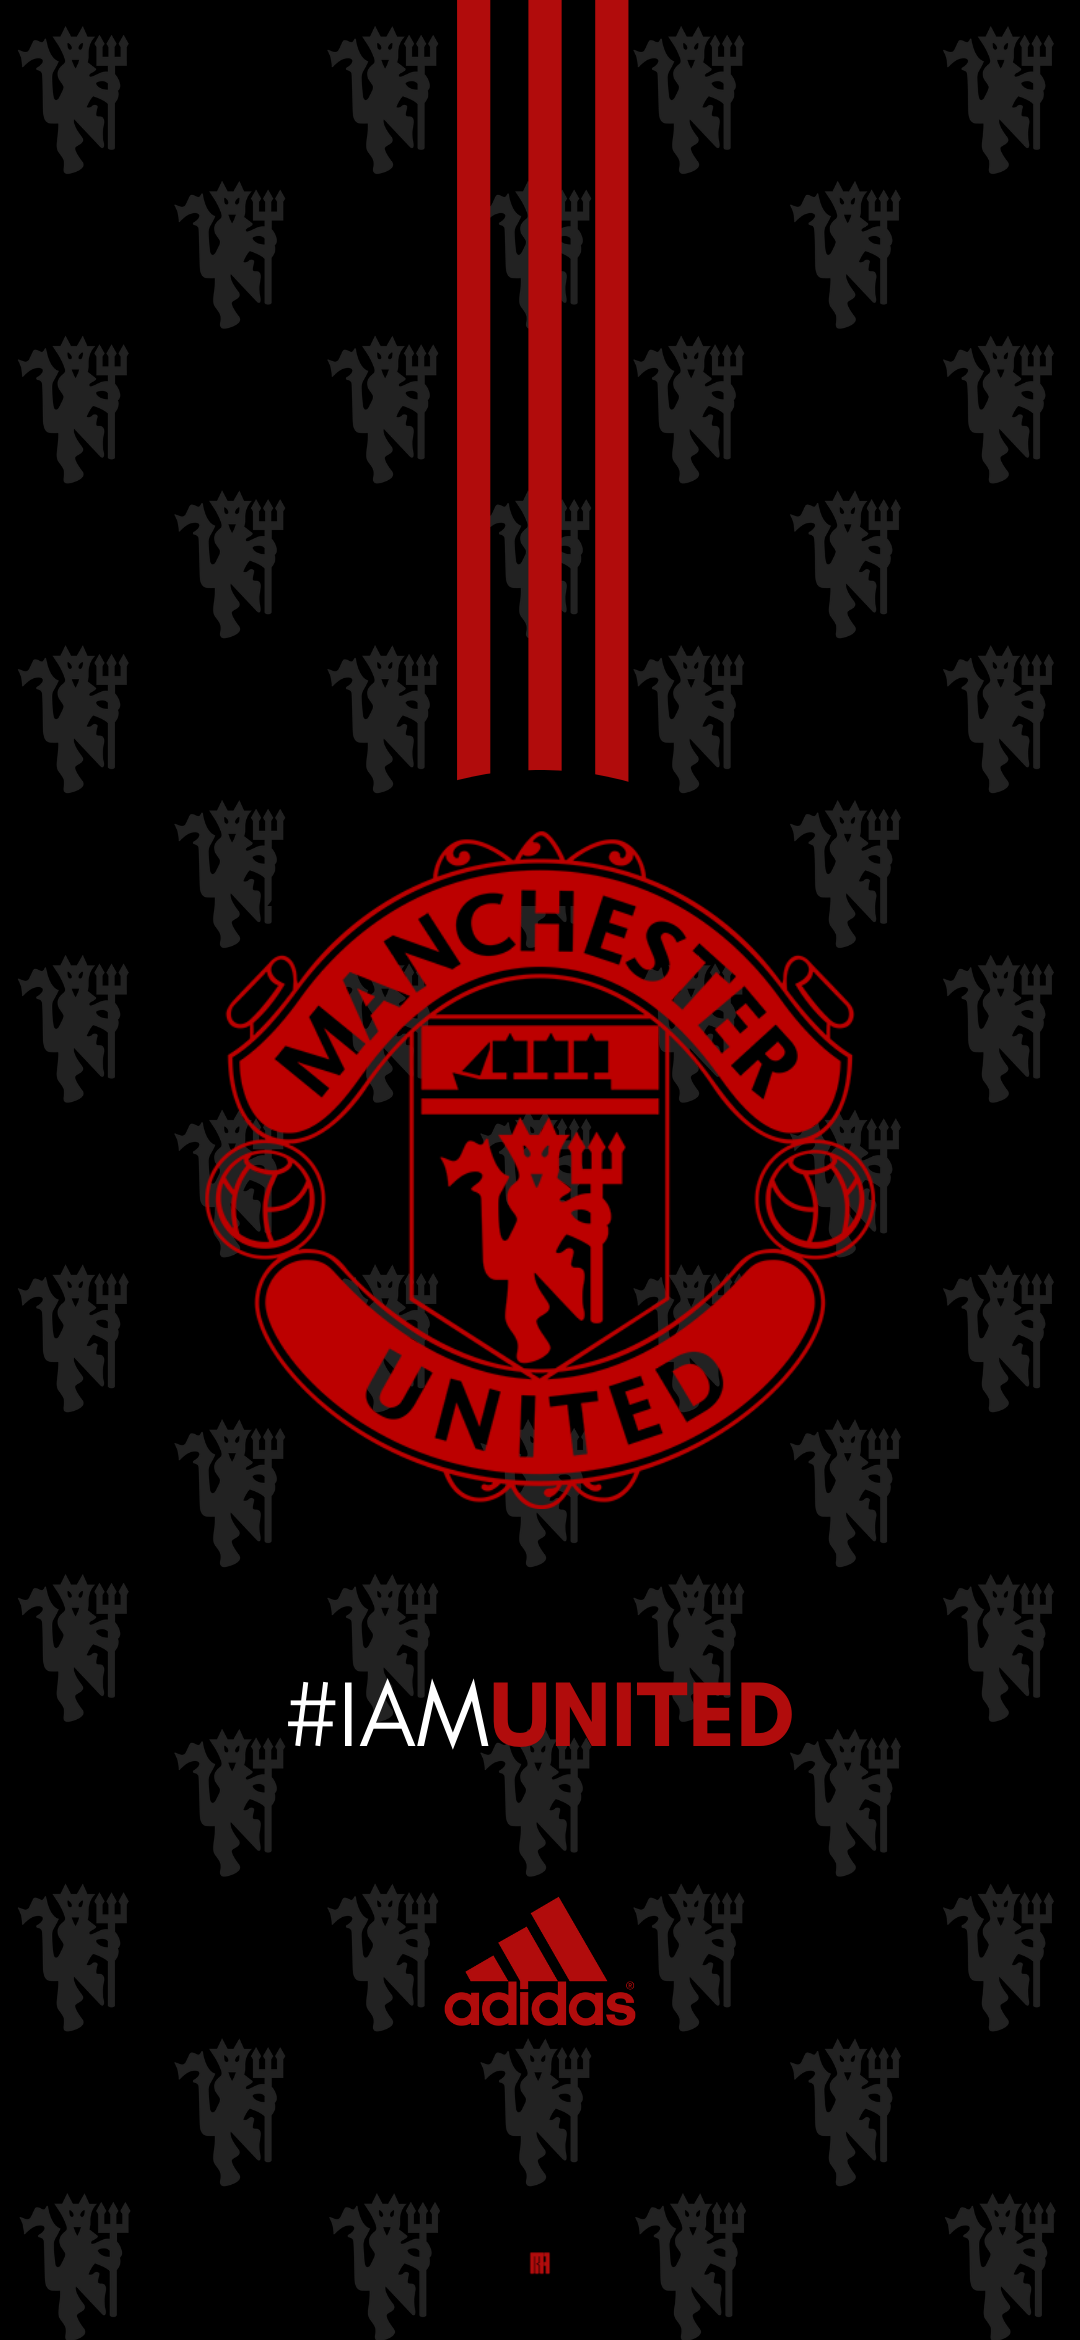 Manchester United Wallpaper Edit Di 2020 Sepak Bola Gambar Foto Abstrak